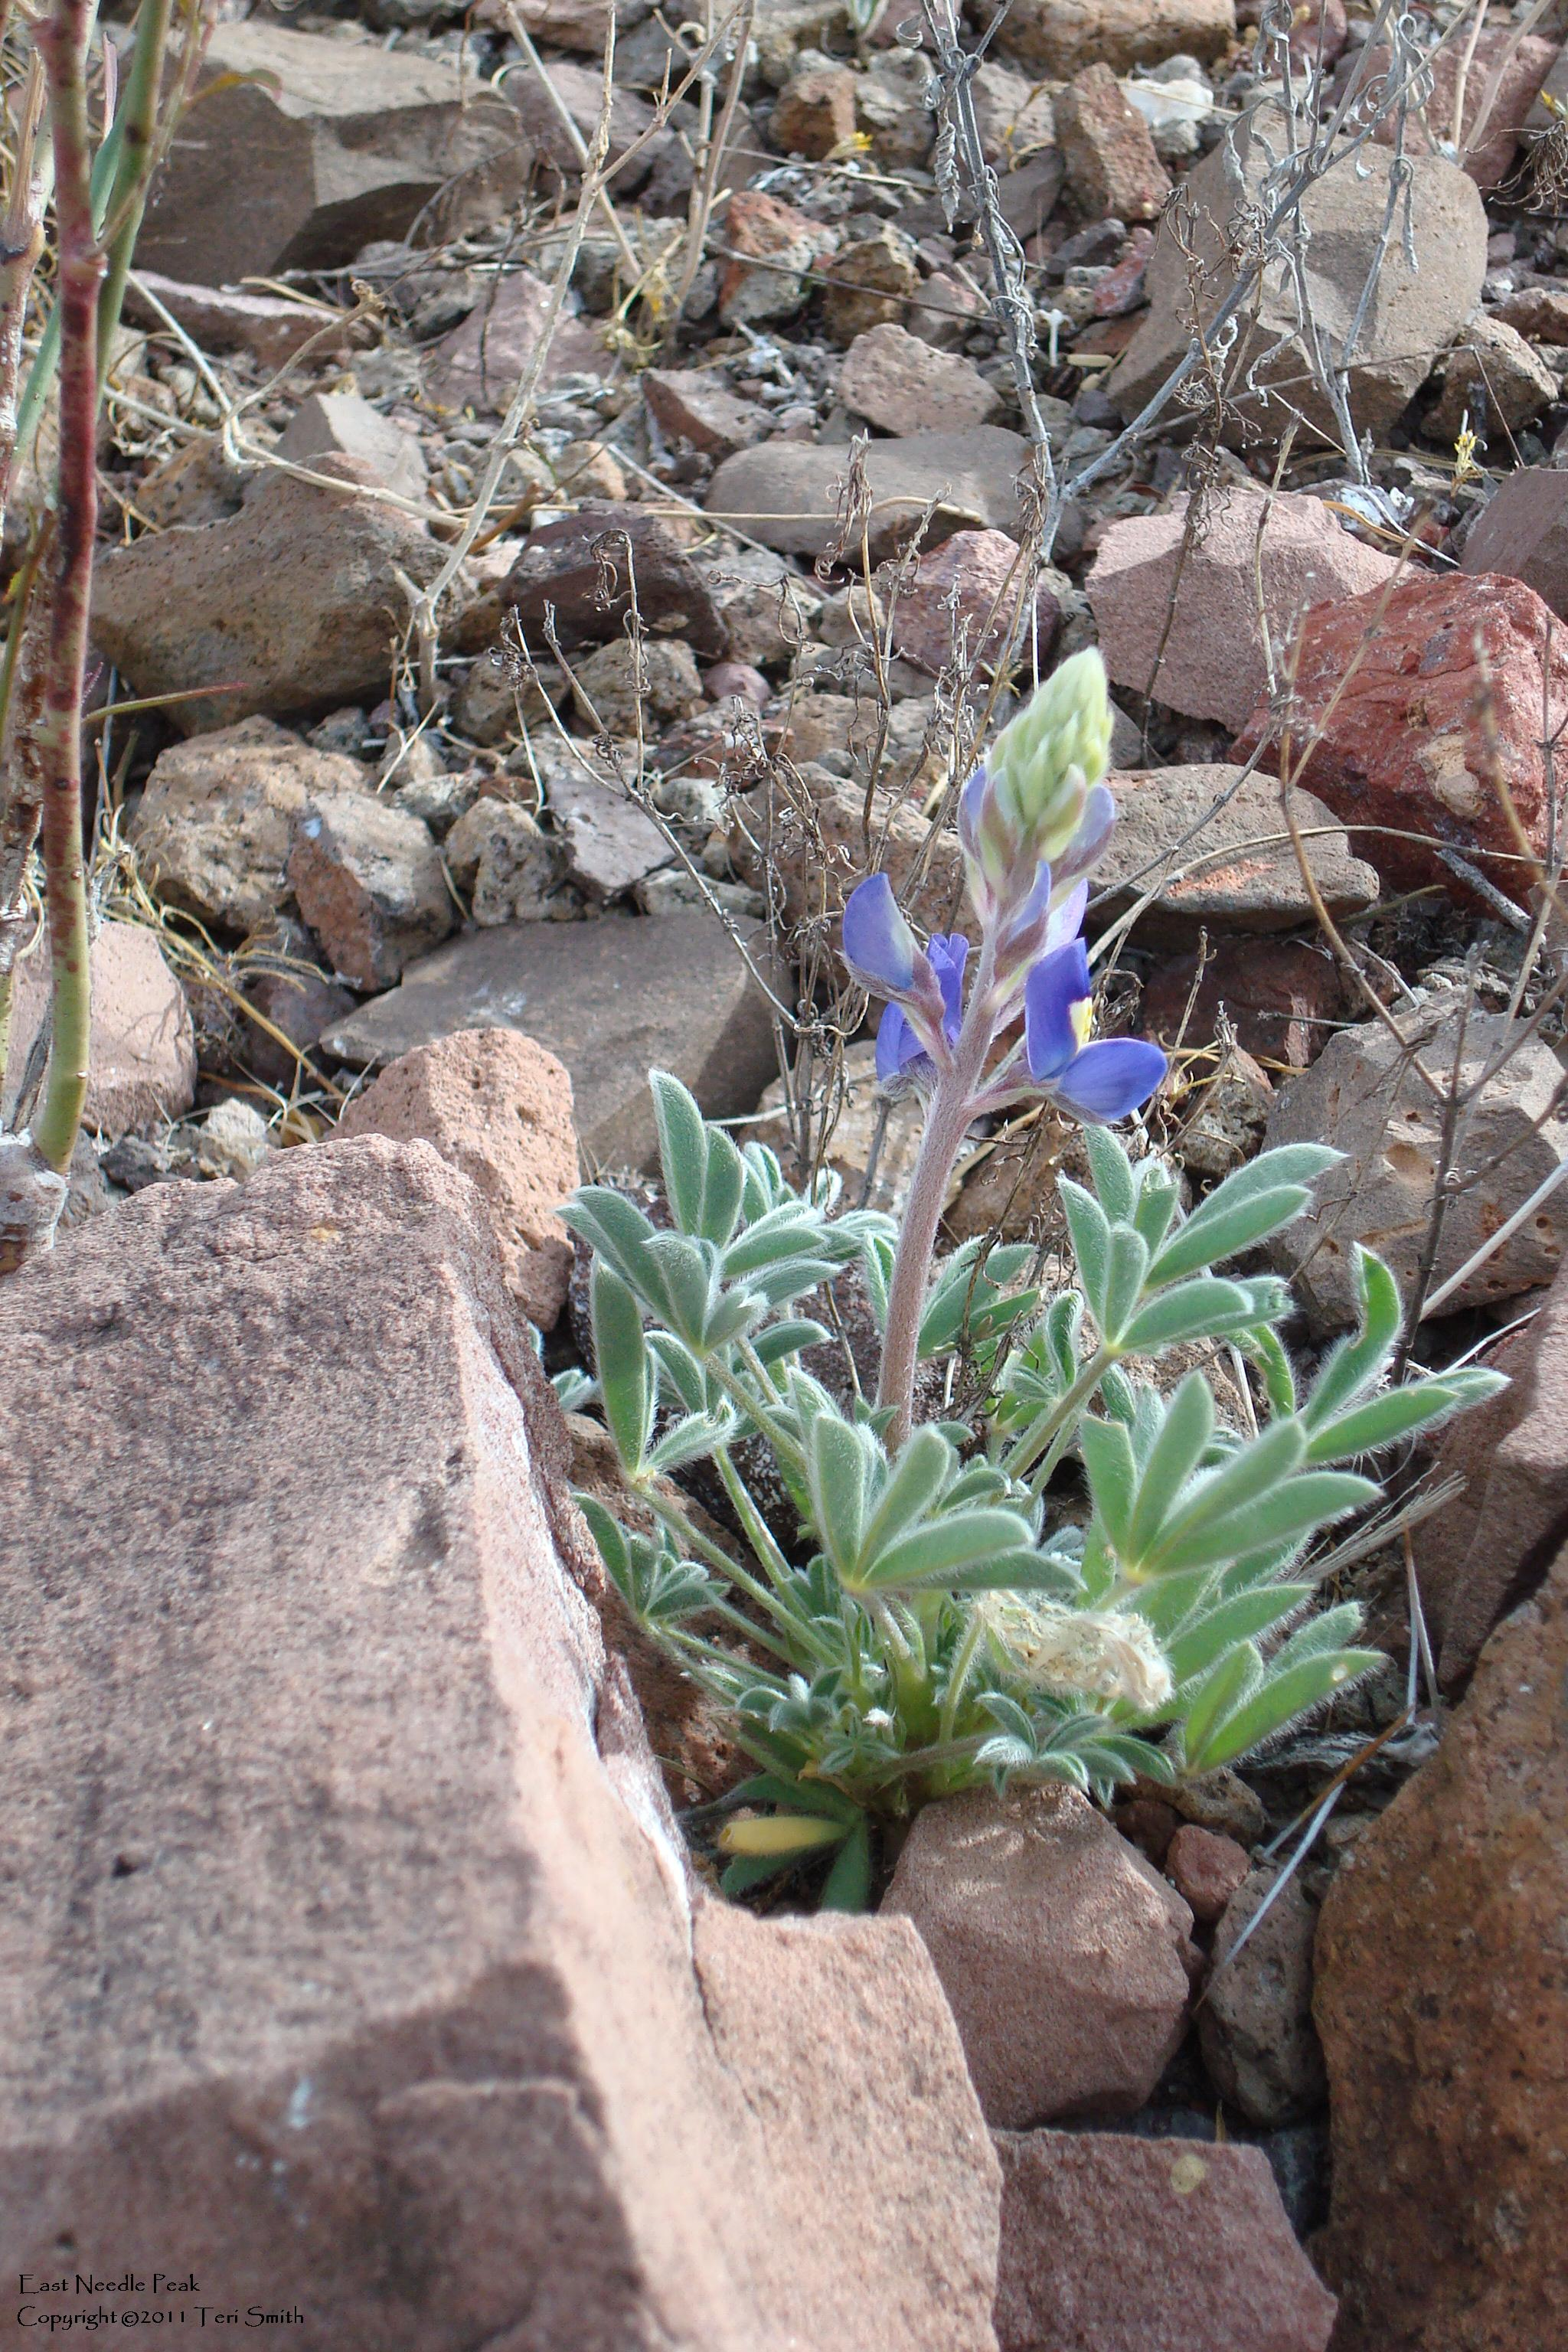 Big Bend Bluebonnet - East Needle Peak 2